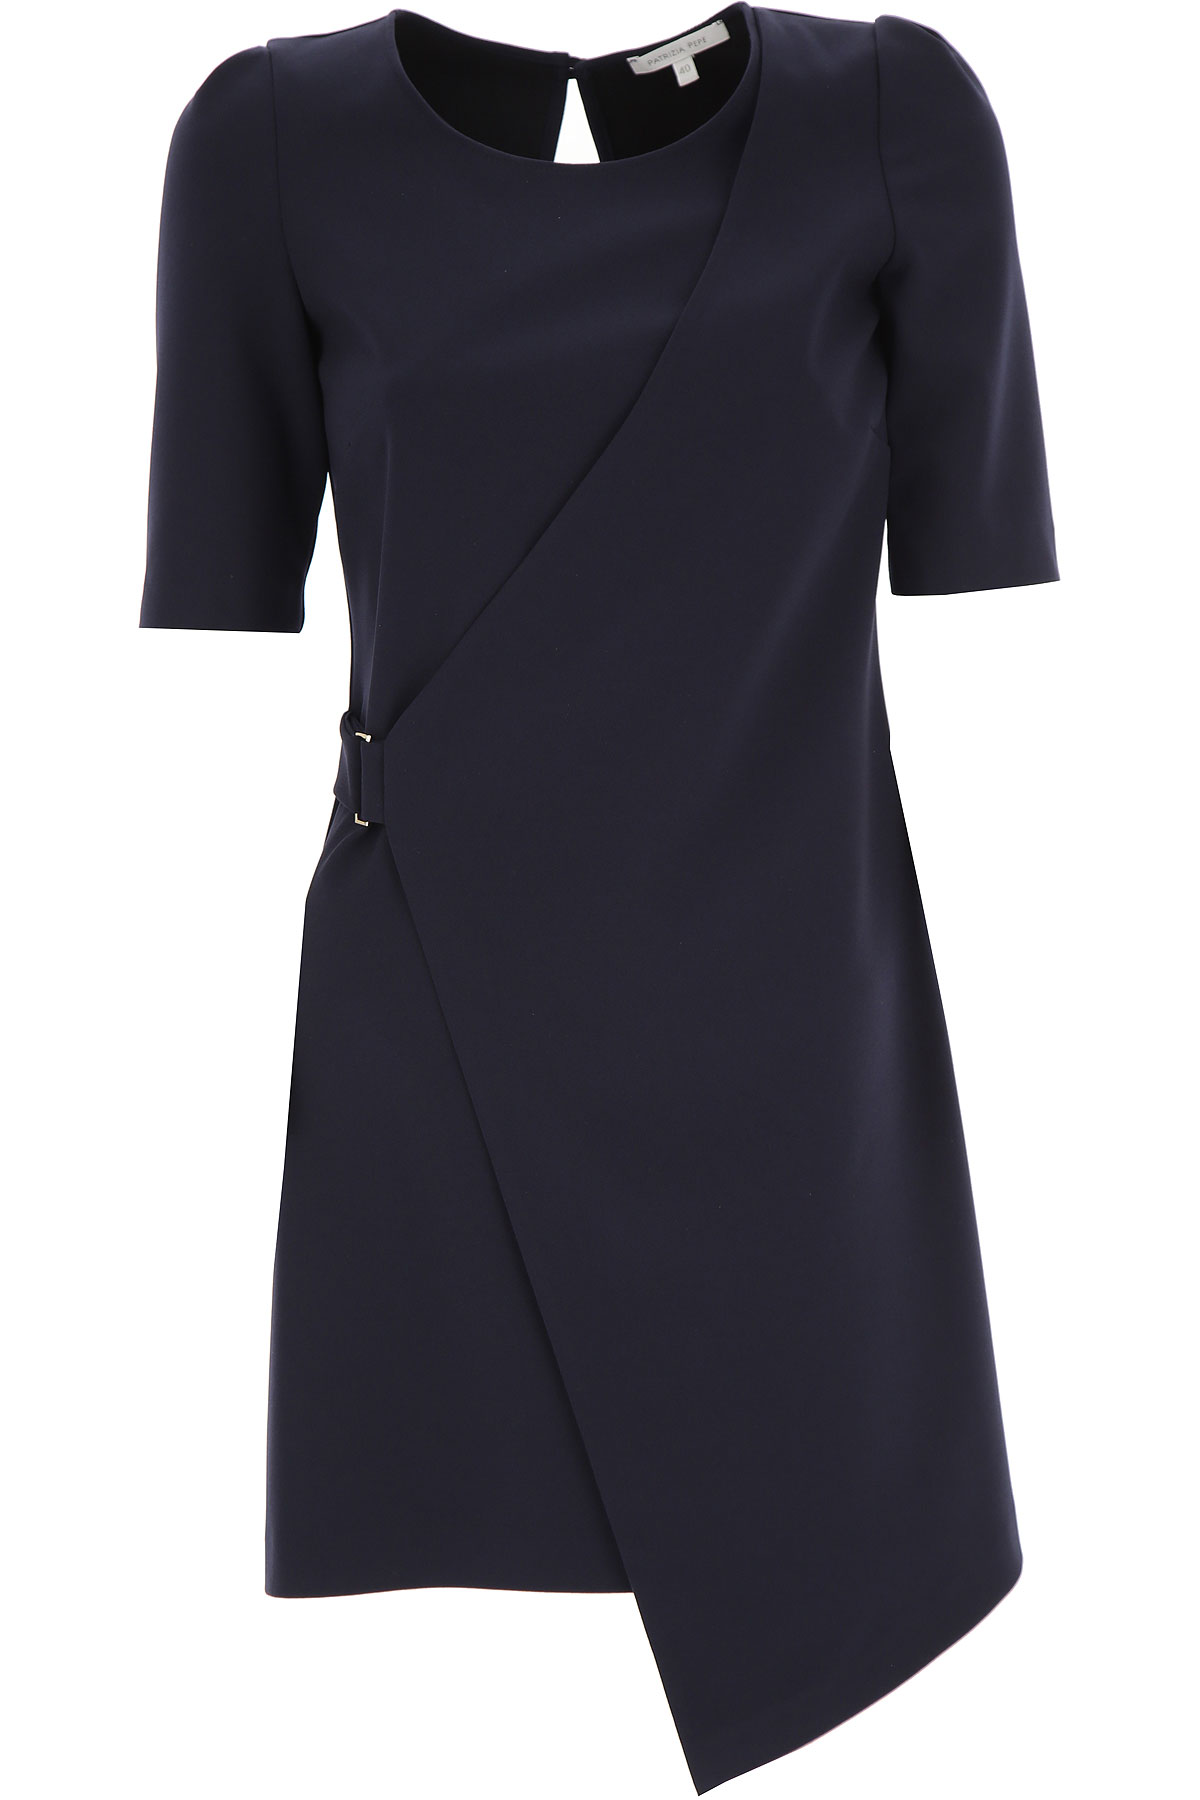 Patrizia Pepe Dress for Women, Evening Cocktail Party On Sale in Outlet, Dress Blue, polyester, 2019, 12 8